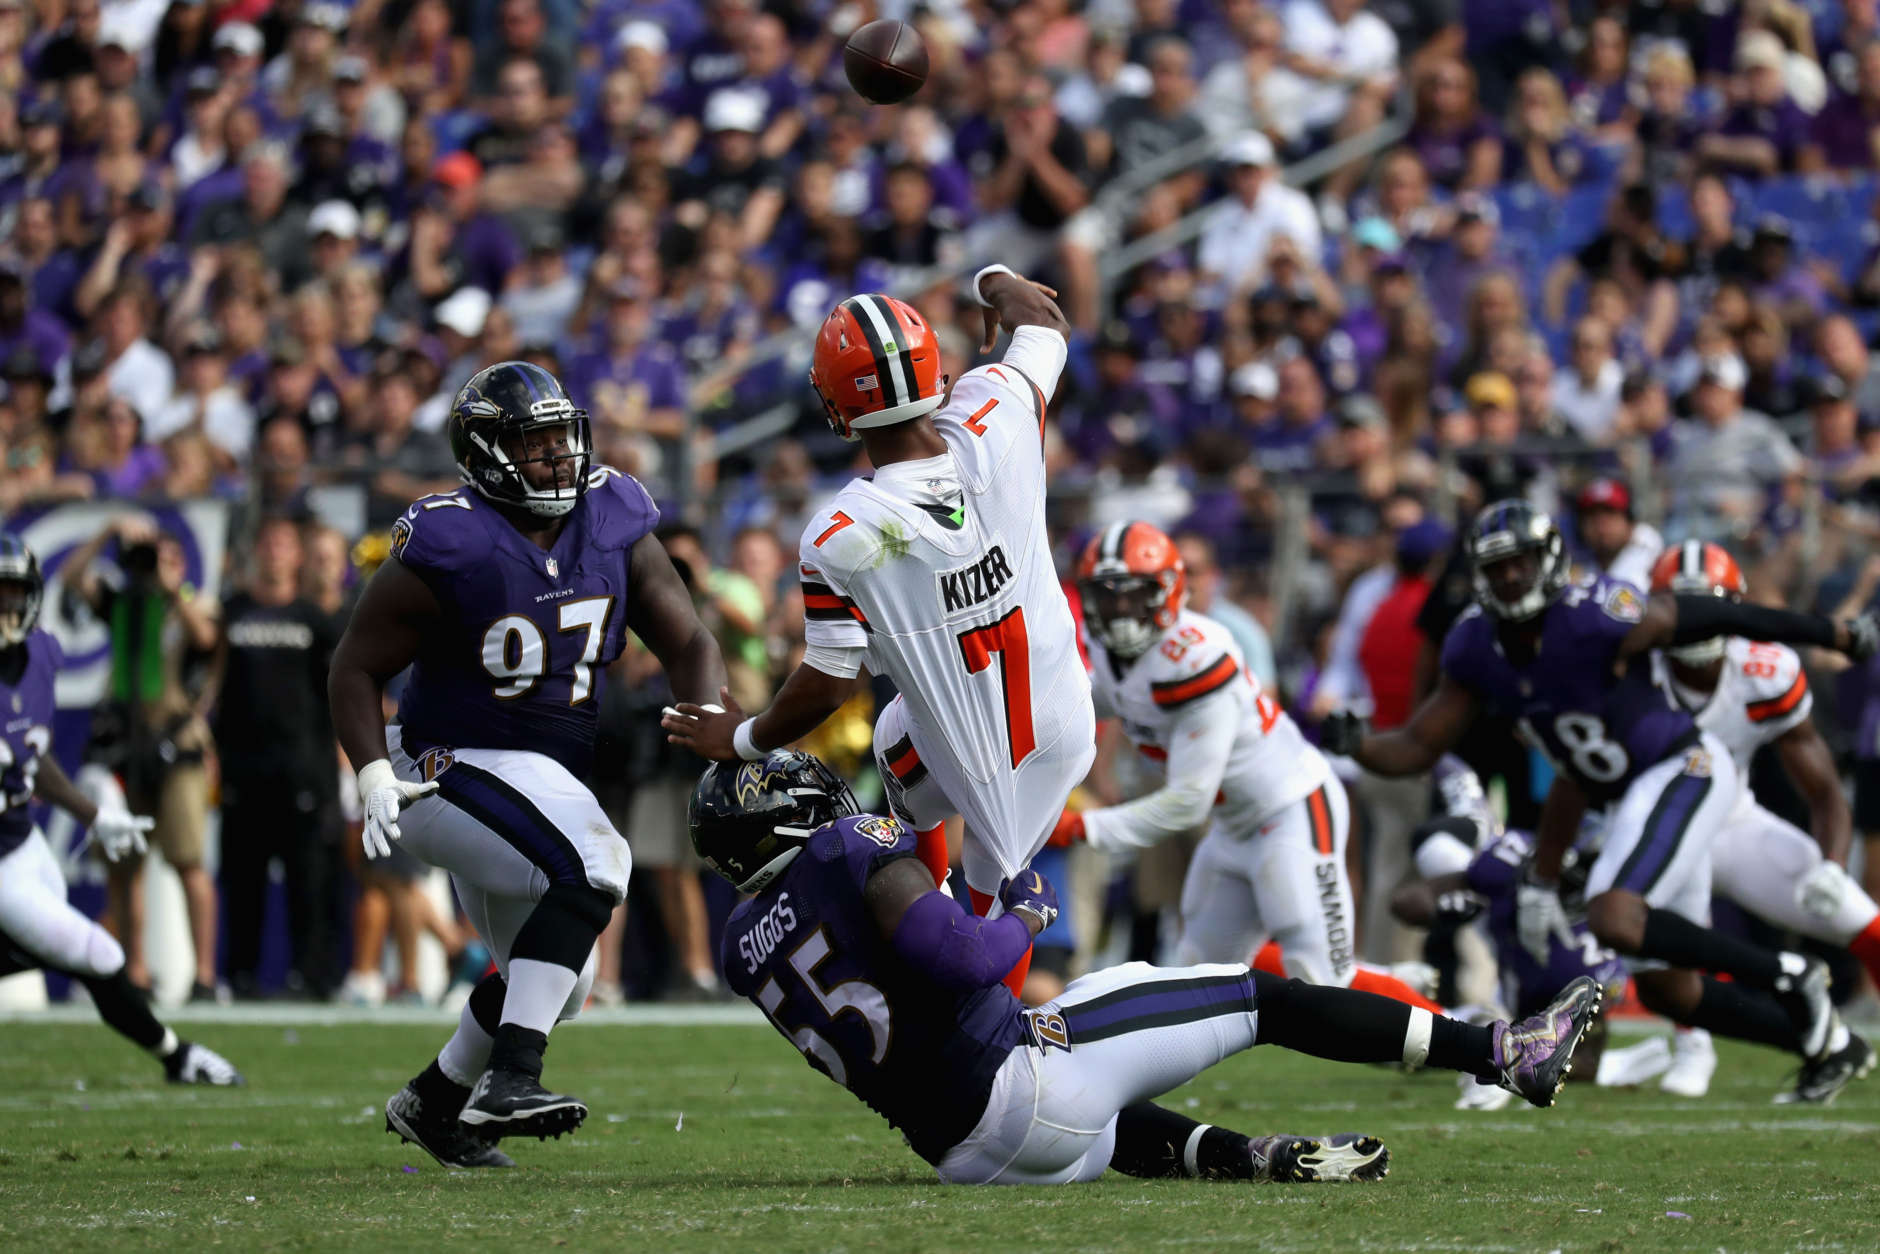 BALTIMORE, MD - SEPTEMBER 17: Quarterback DeShone Kizer #7 of the Cleveland Browns gets off a pass while being tackled by outside linebacker Terrell Suggs #55 of the Baltimore Ravens at M&T Bank Stadium on September 17, 2017 in Baltimore, Maryland.  (Photo by Rob Carr/Getty Images)